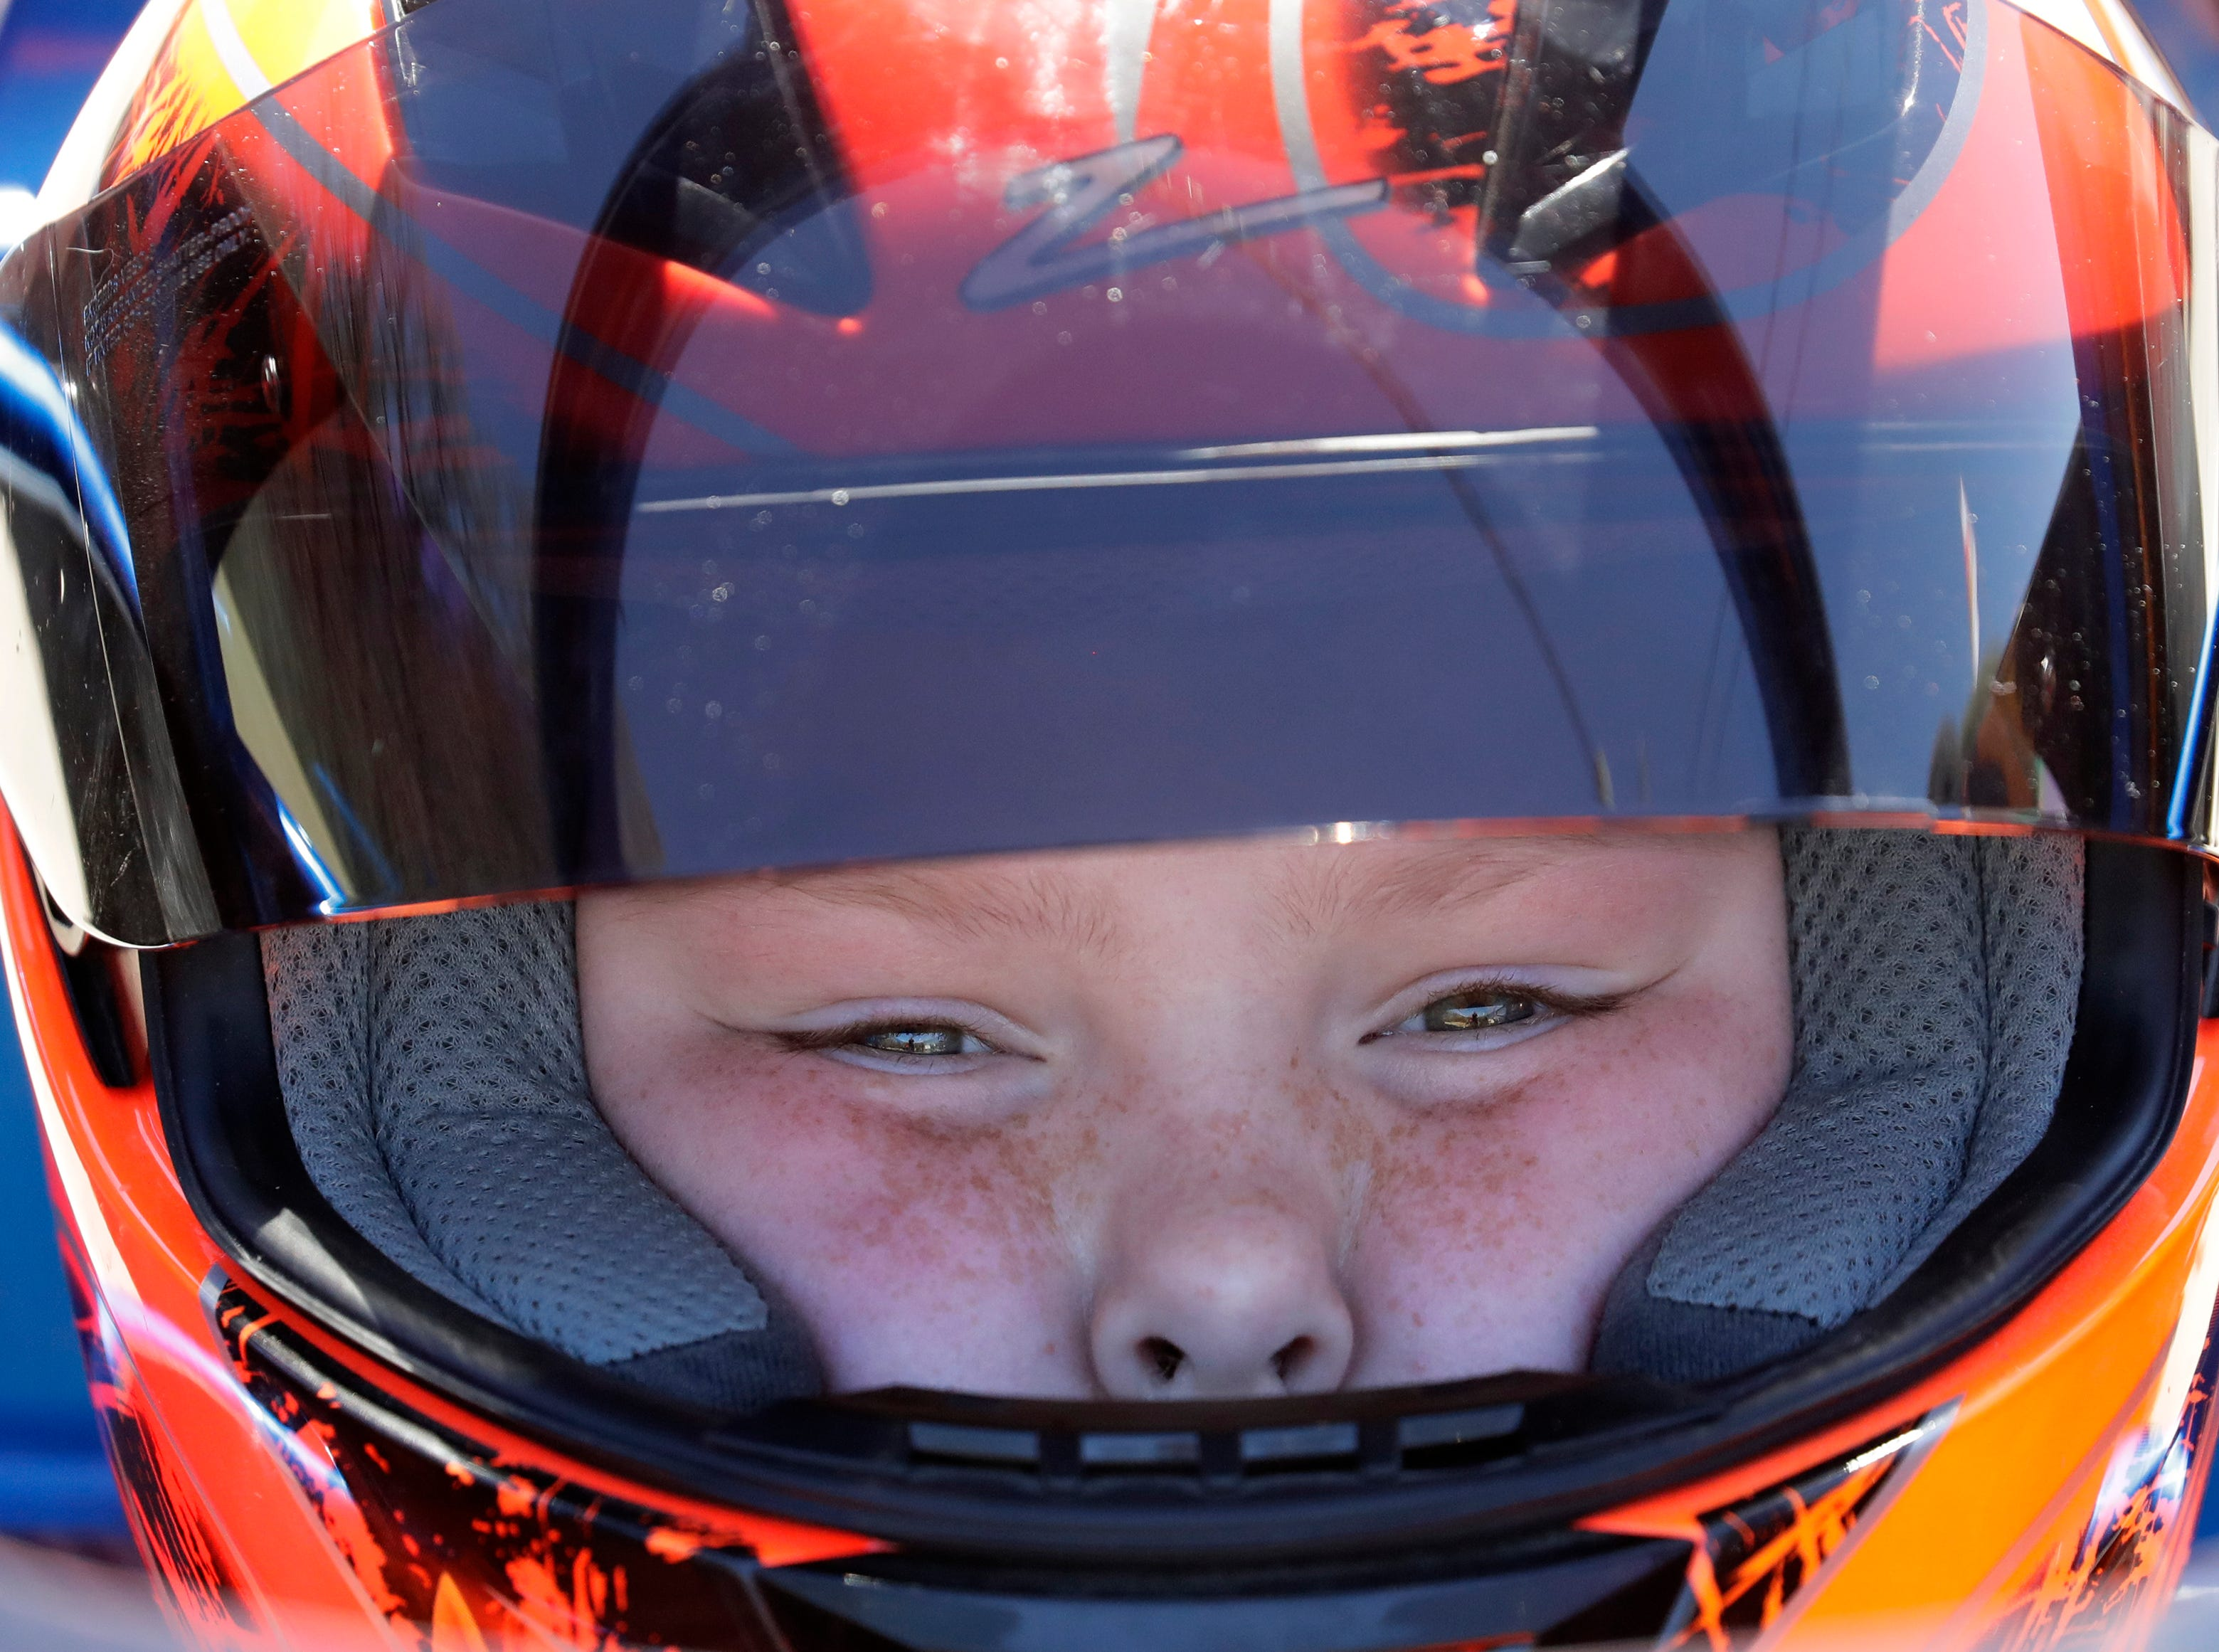 Braeden Emmer, 10, of Darboy is focused and ready to take his junior dragster for a practice run during the Wisconsin International Raceway Strip Test & Tune event Saturday, April 20, 2019, in Kaukauna, Wis.